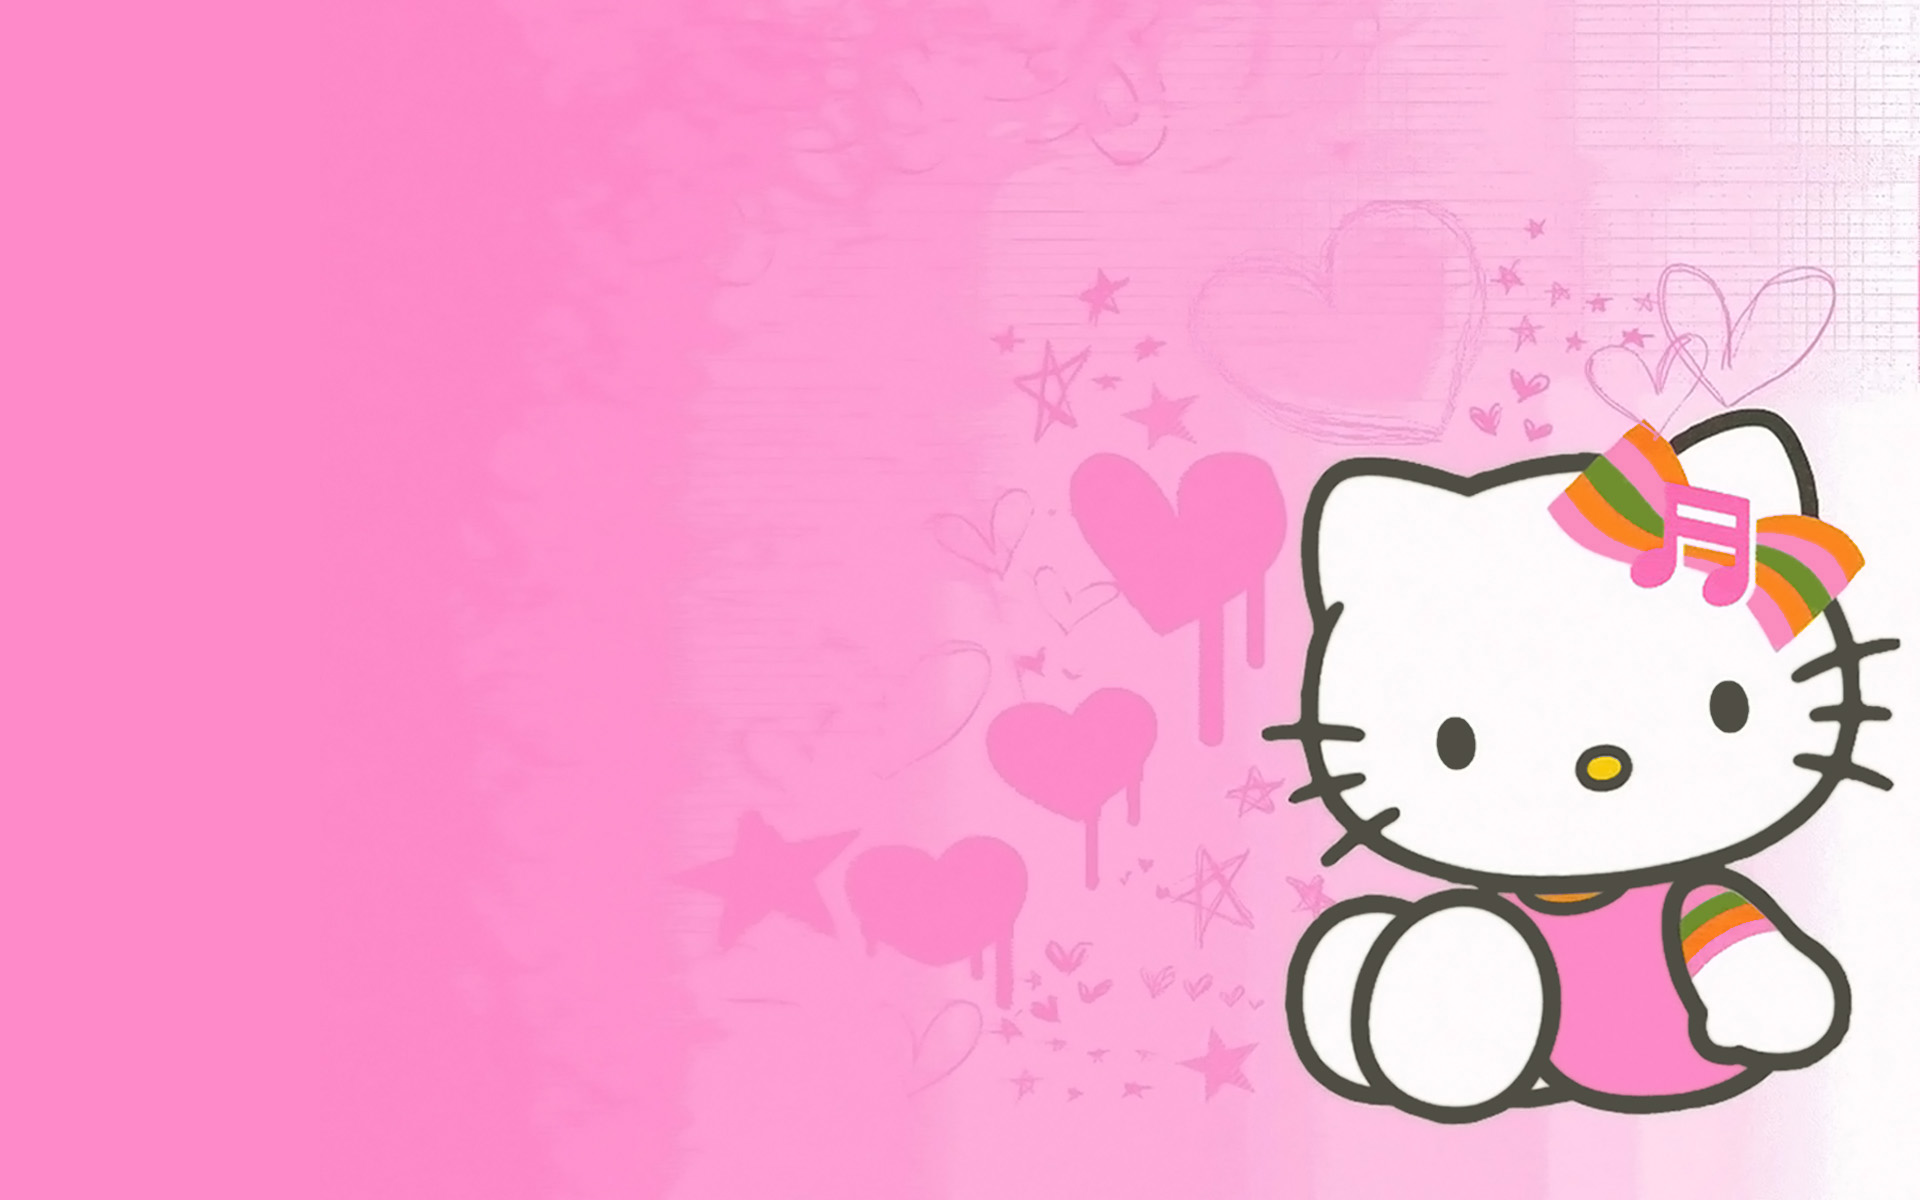 Pink Hello Kitty Wallpaper For Android Wallpaper 1920x1200